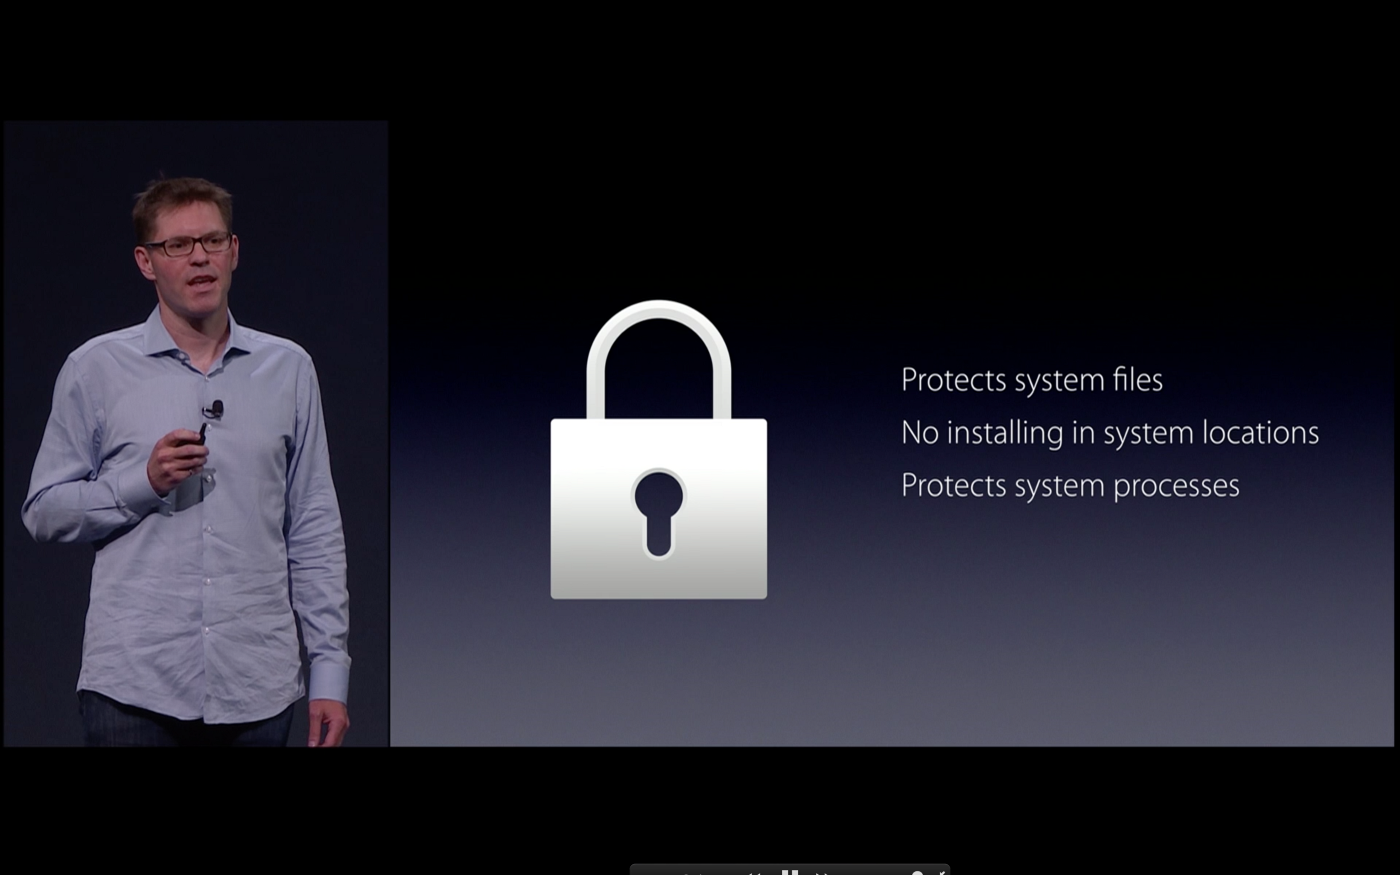 One Big List of the New Privacy and Security Features in iOS 9